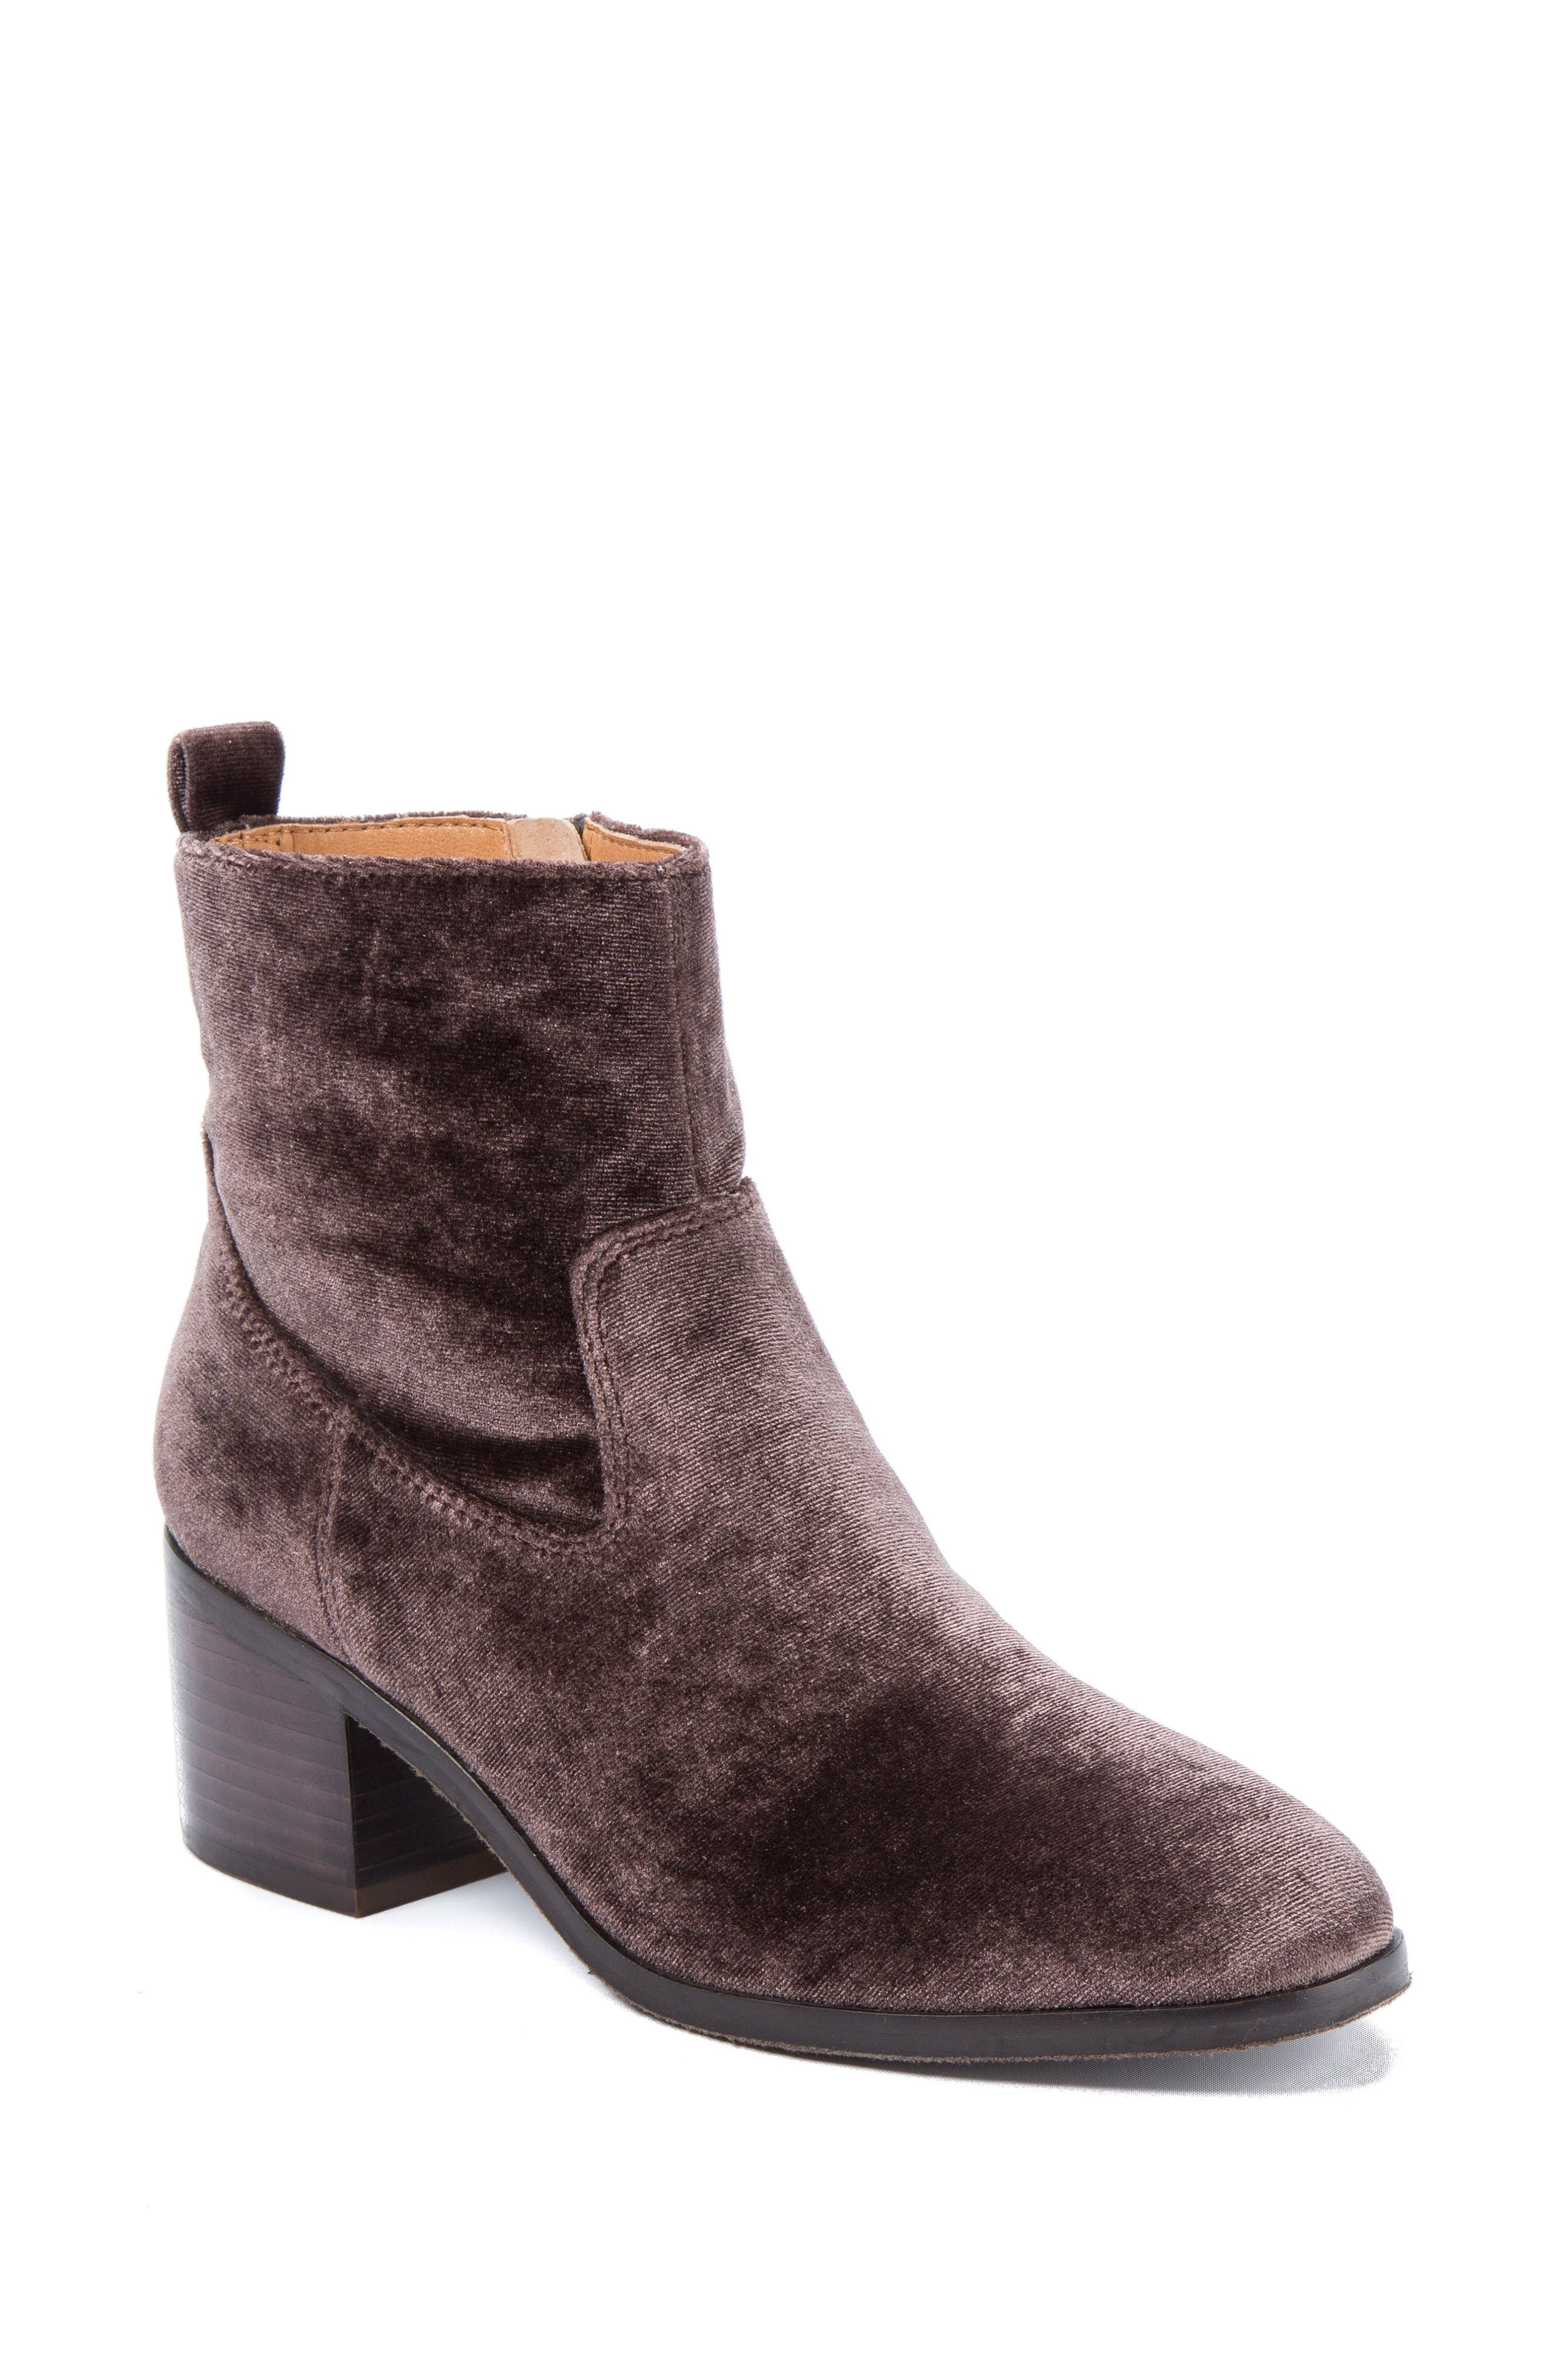 Dosay Bootie,                             Main thumbnail 1, color,